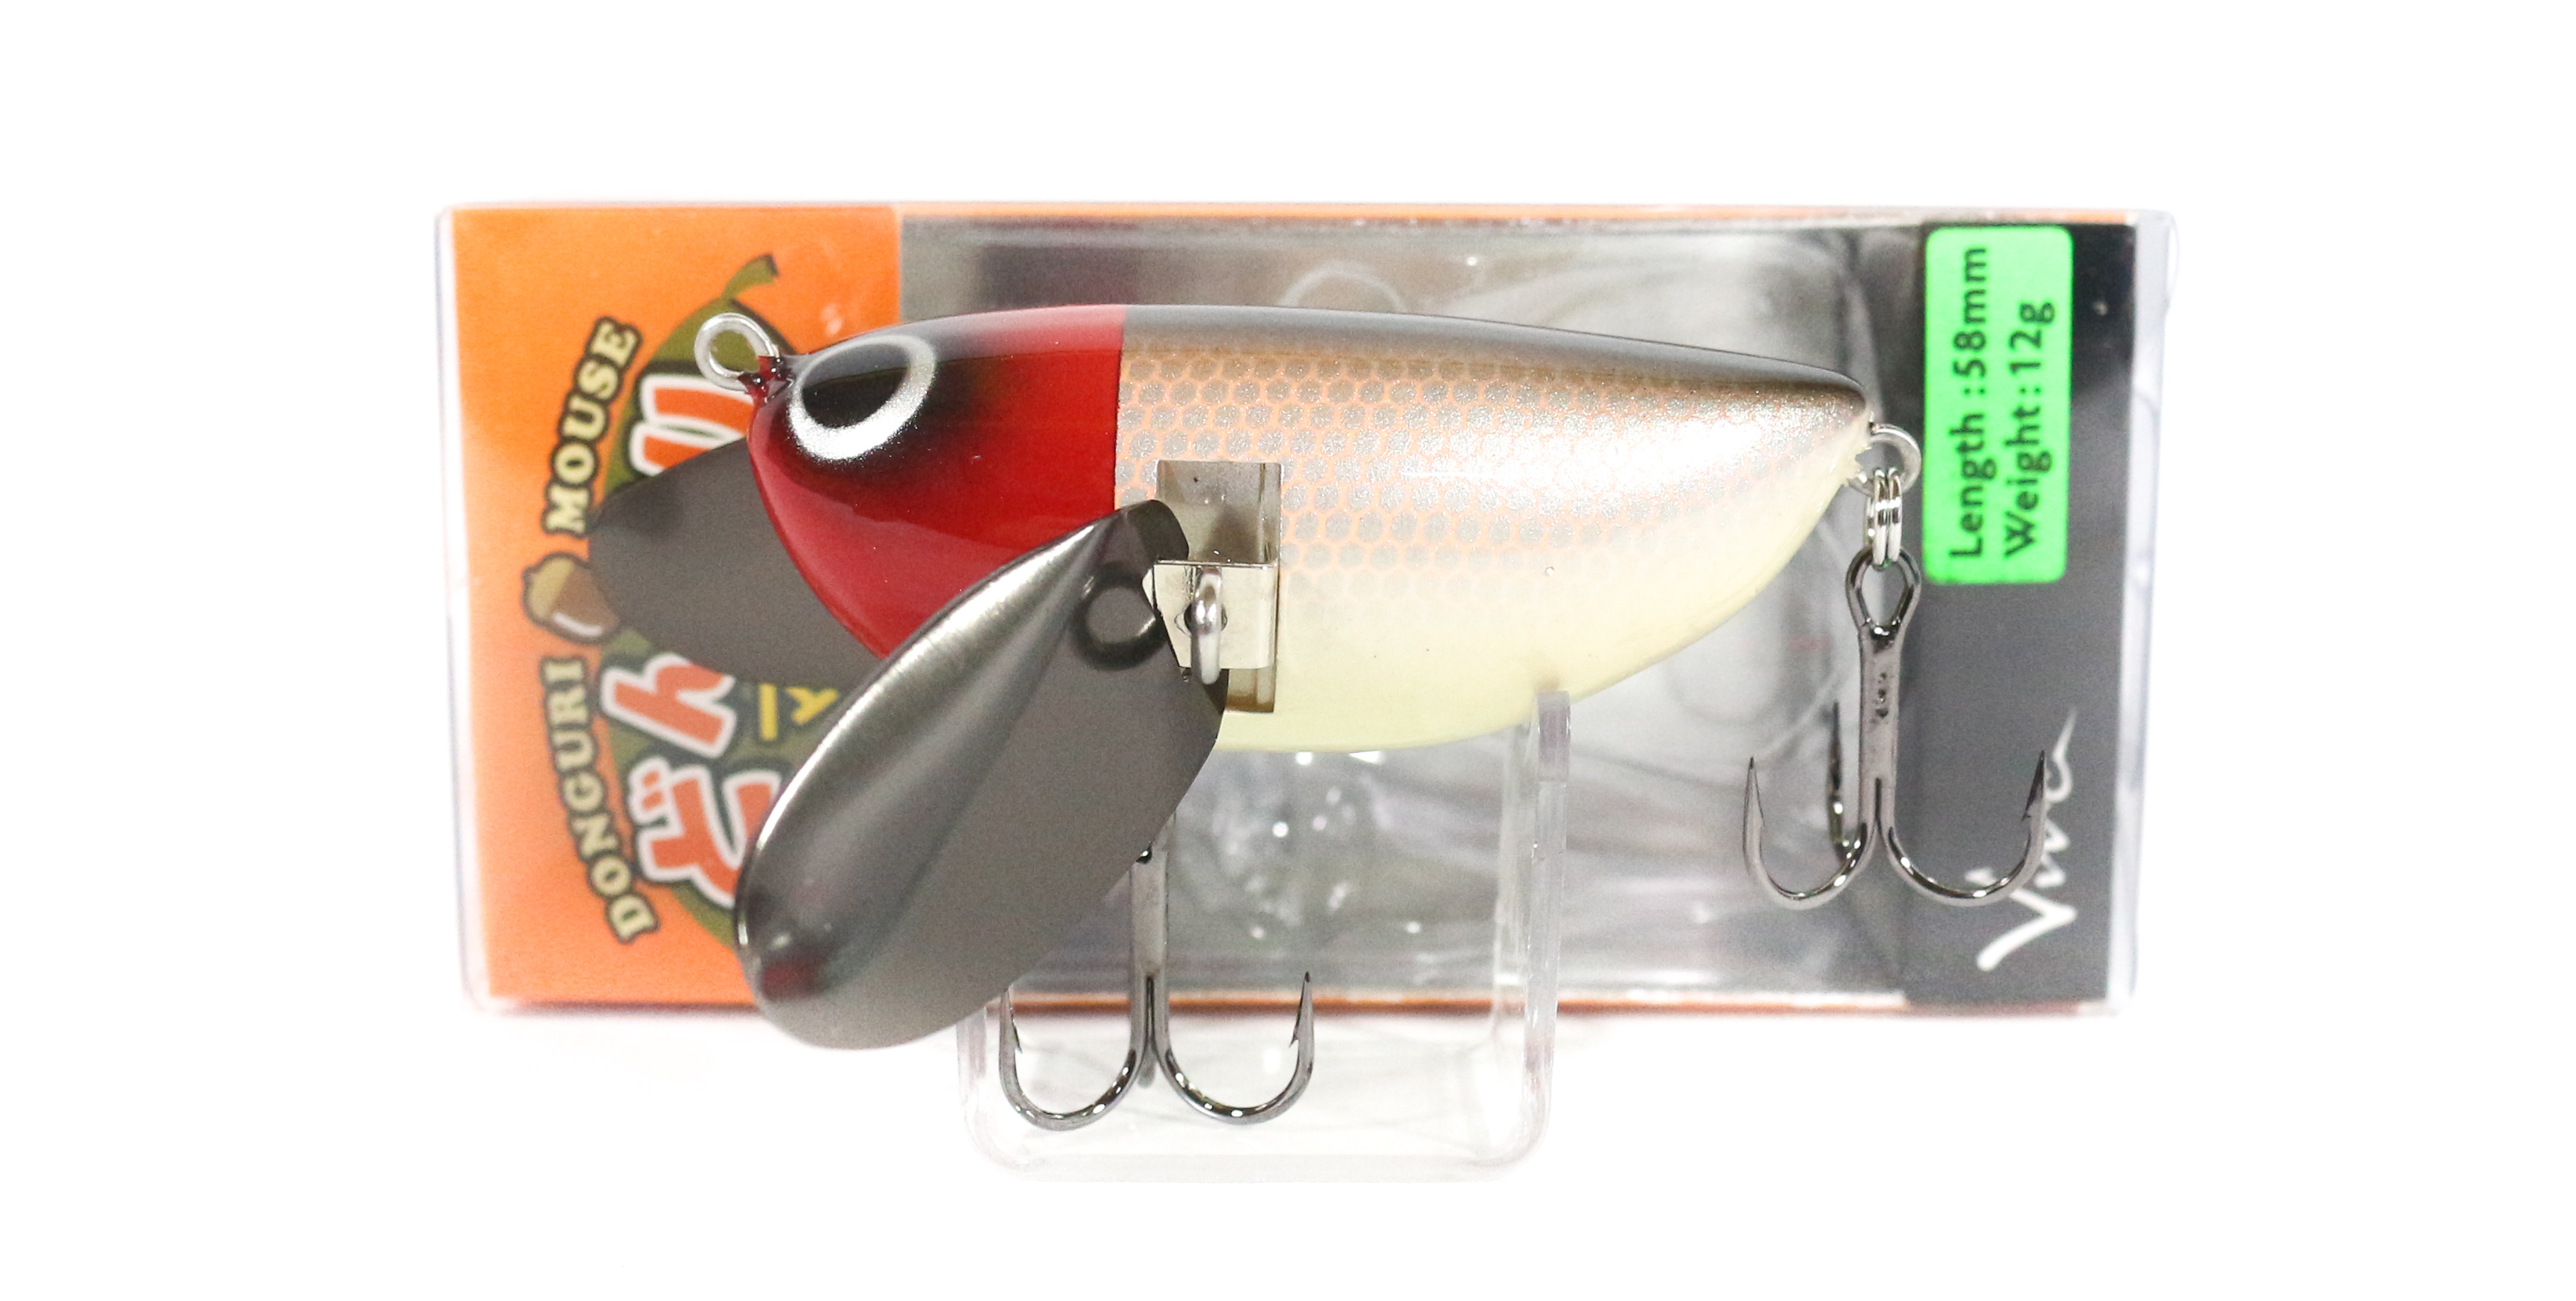 Viva Donguri Mouse Hyper Clapper Sound Floating Lure 147 (5267)